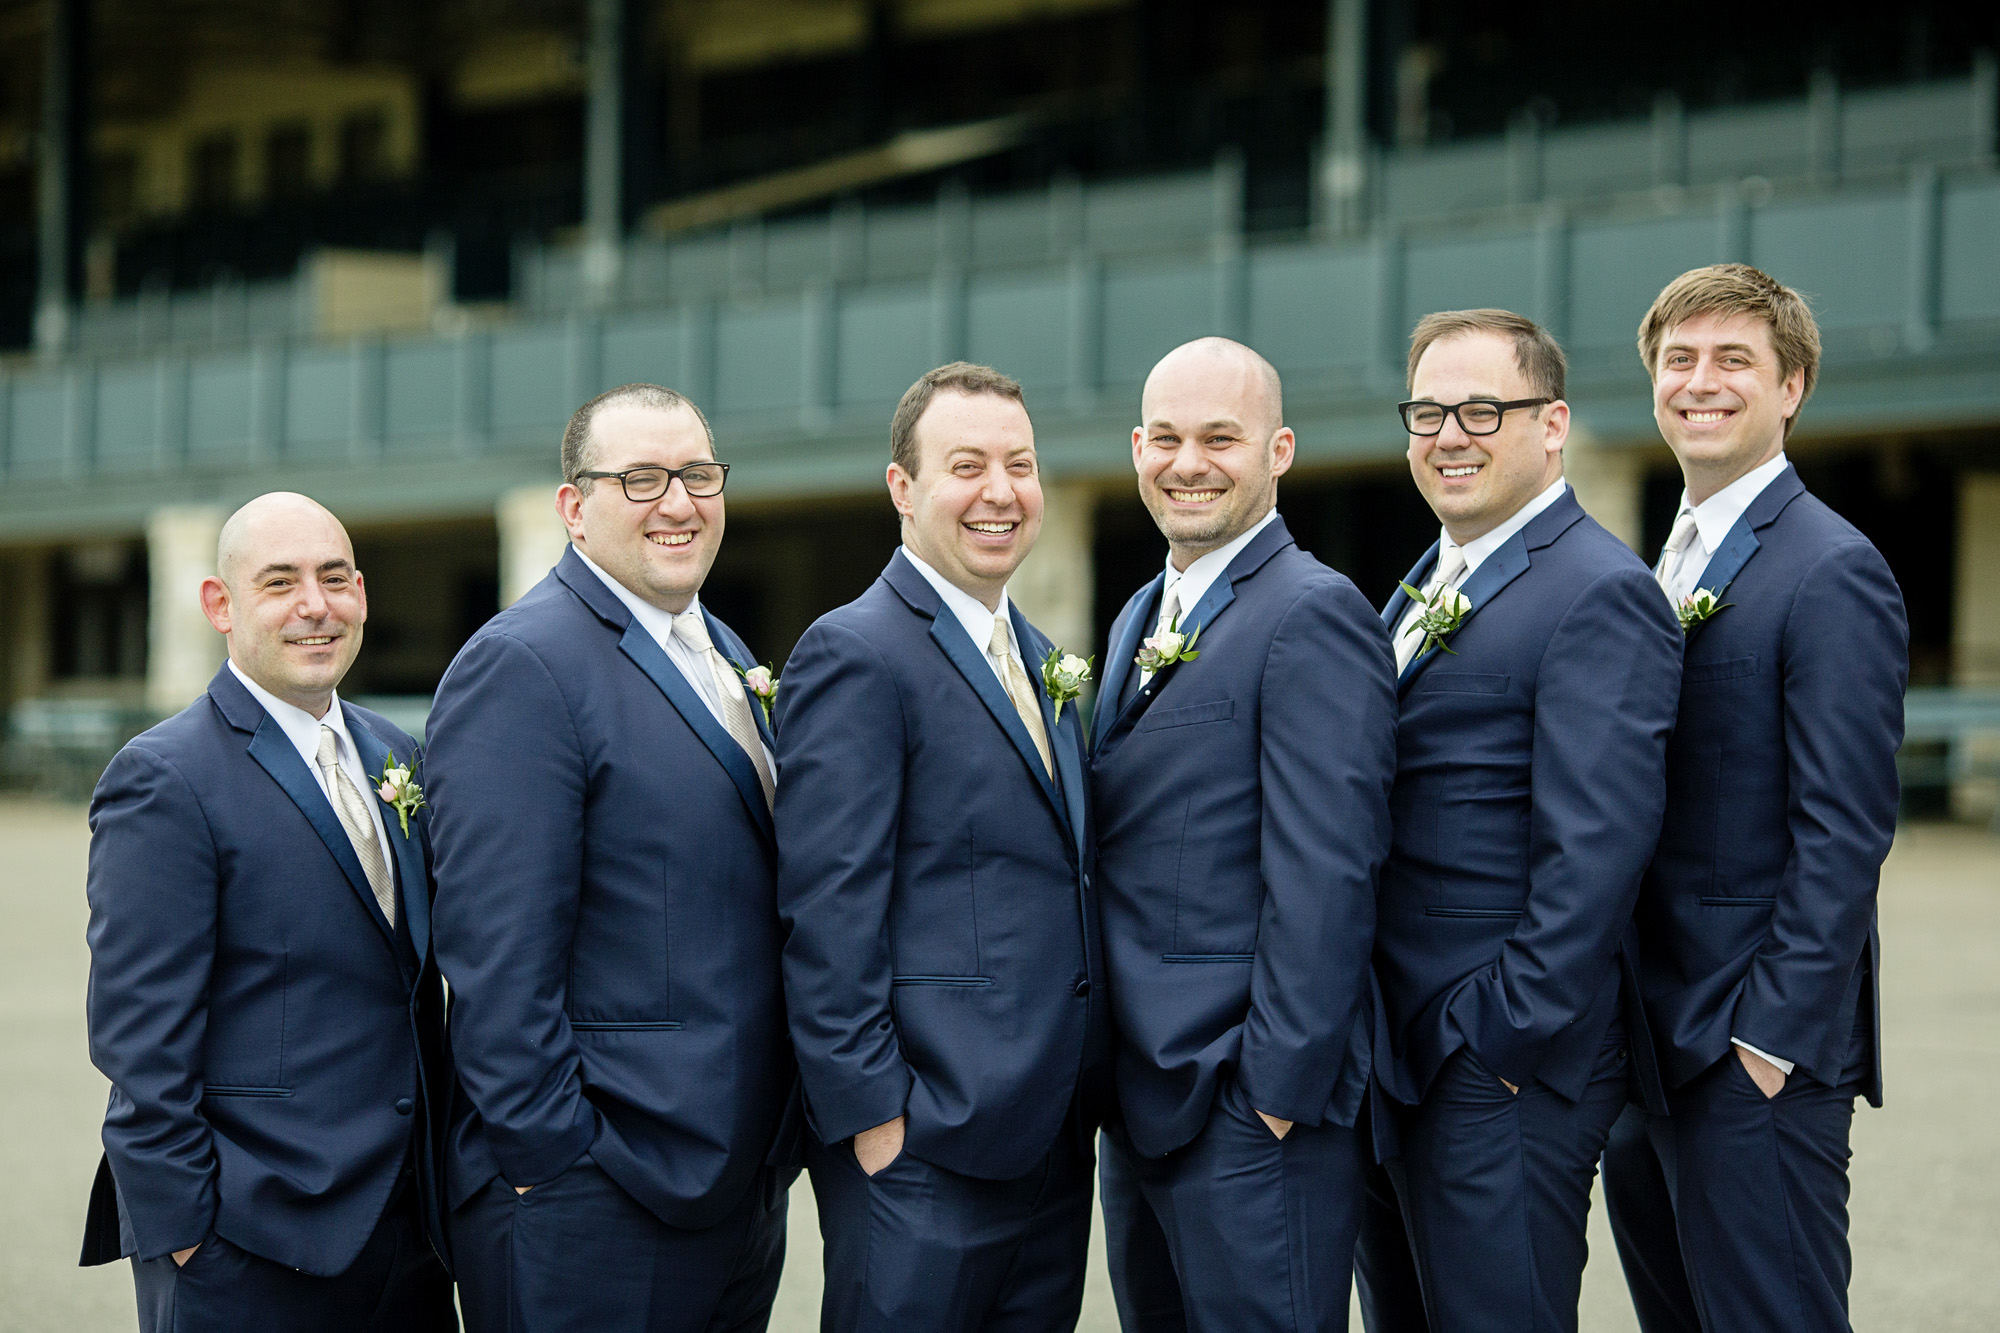 Seriously_Sabrina_Photography_Lexington_Kentucky_Downtown_Keeneland_Clubhouse_Wedding_Spitzer_61.jpg